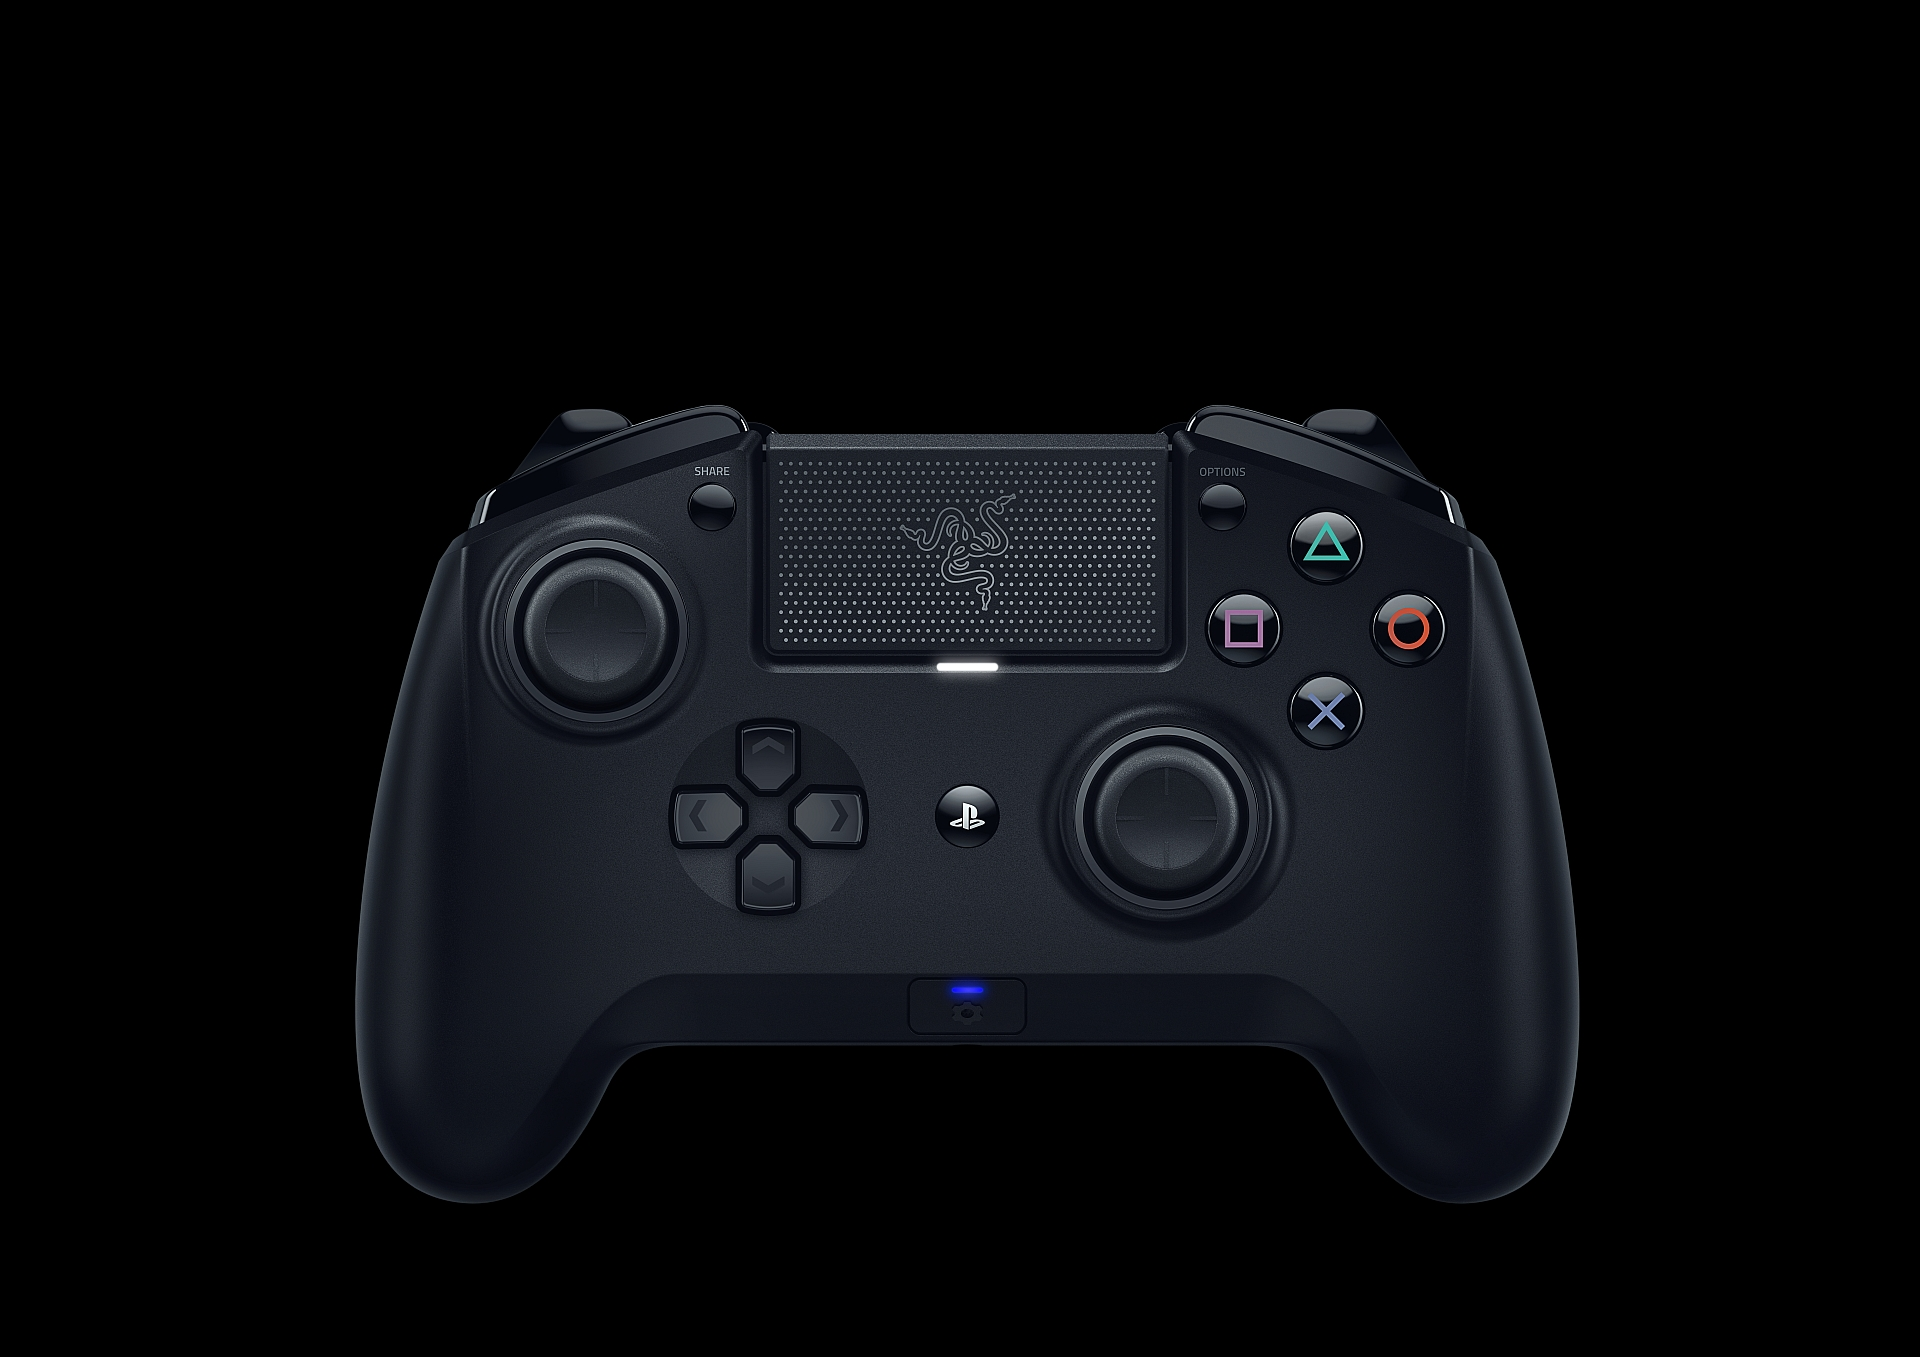 Razer Raiju Ps4 : I did press the screwdriver looking button in the bottom and i did also turn the bluetooth on my phone but it still didn't.